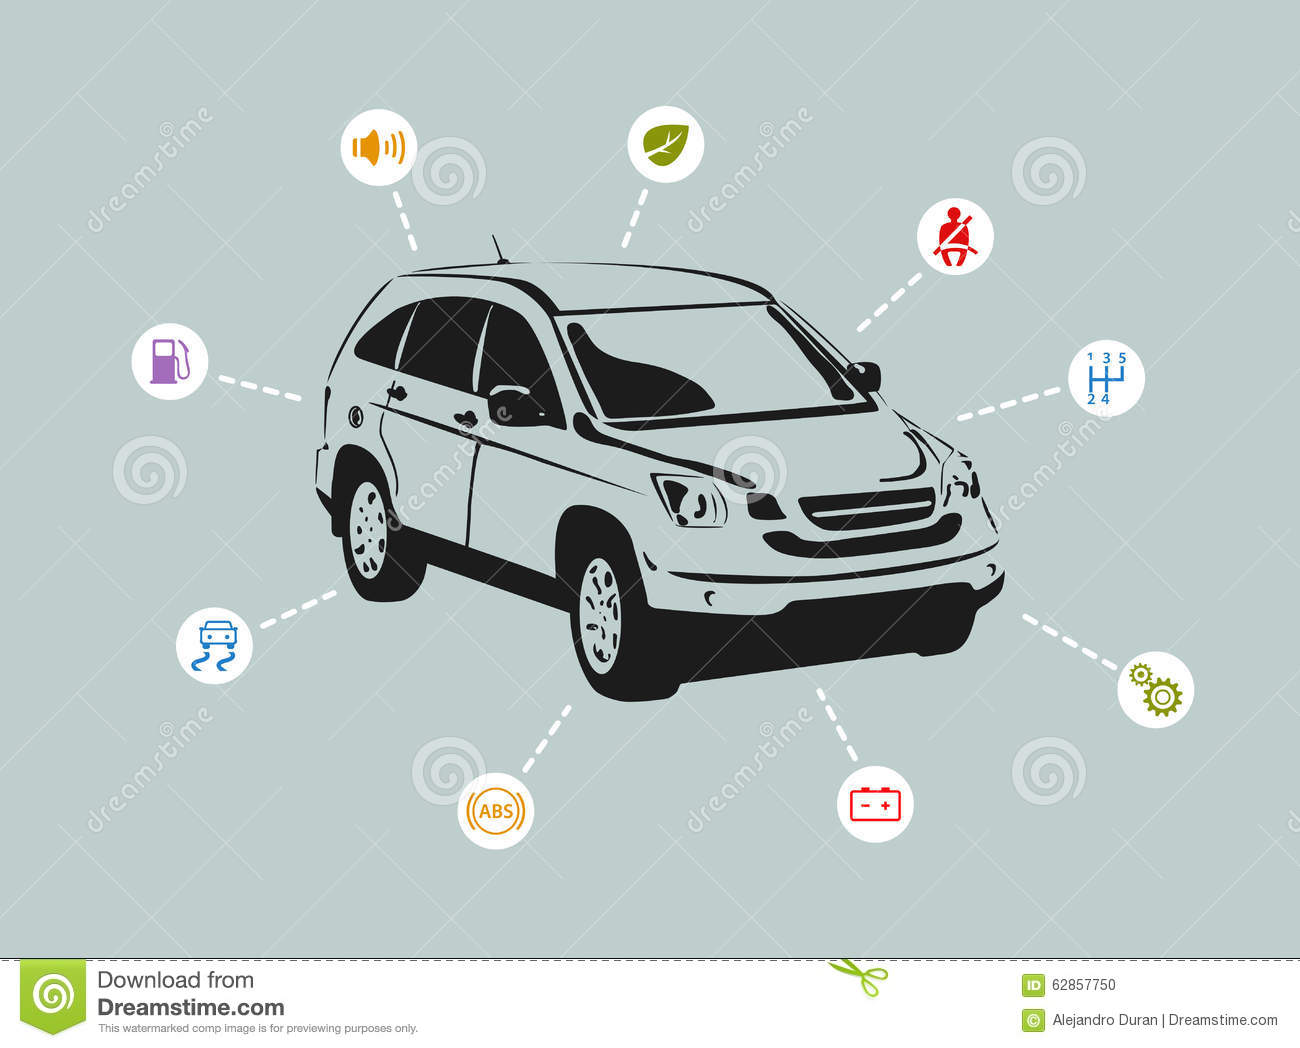 suv features stock vector illustration of elements, abstract 62857750suv features, diagram of truck car